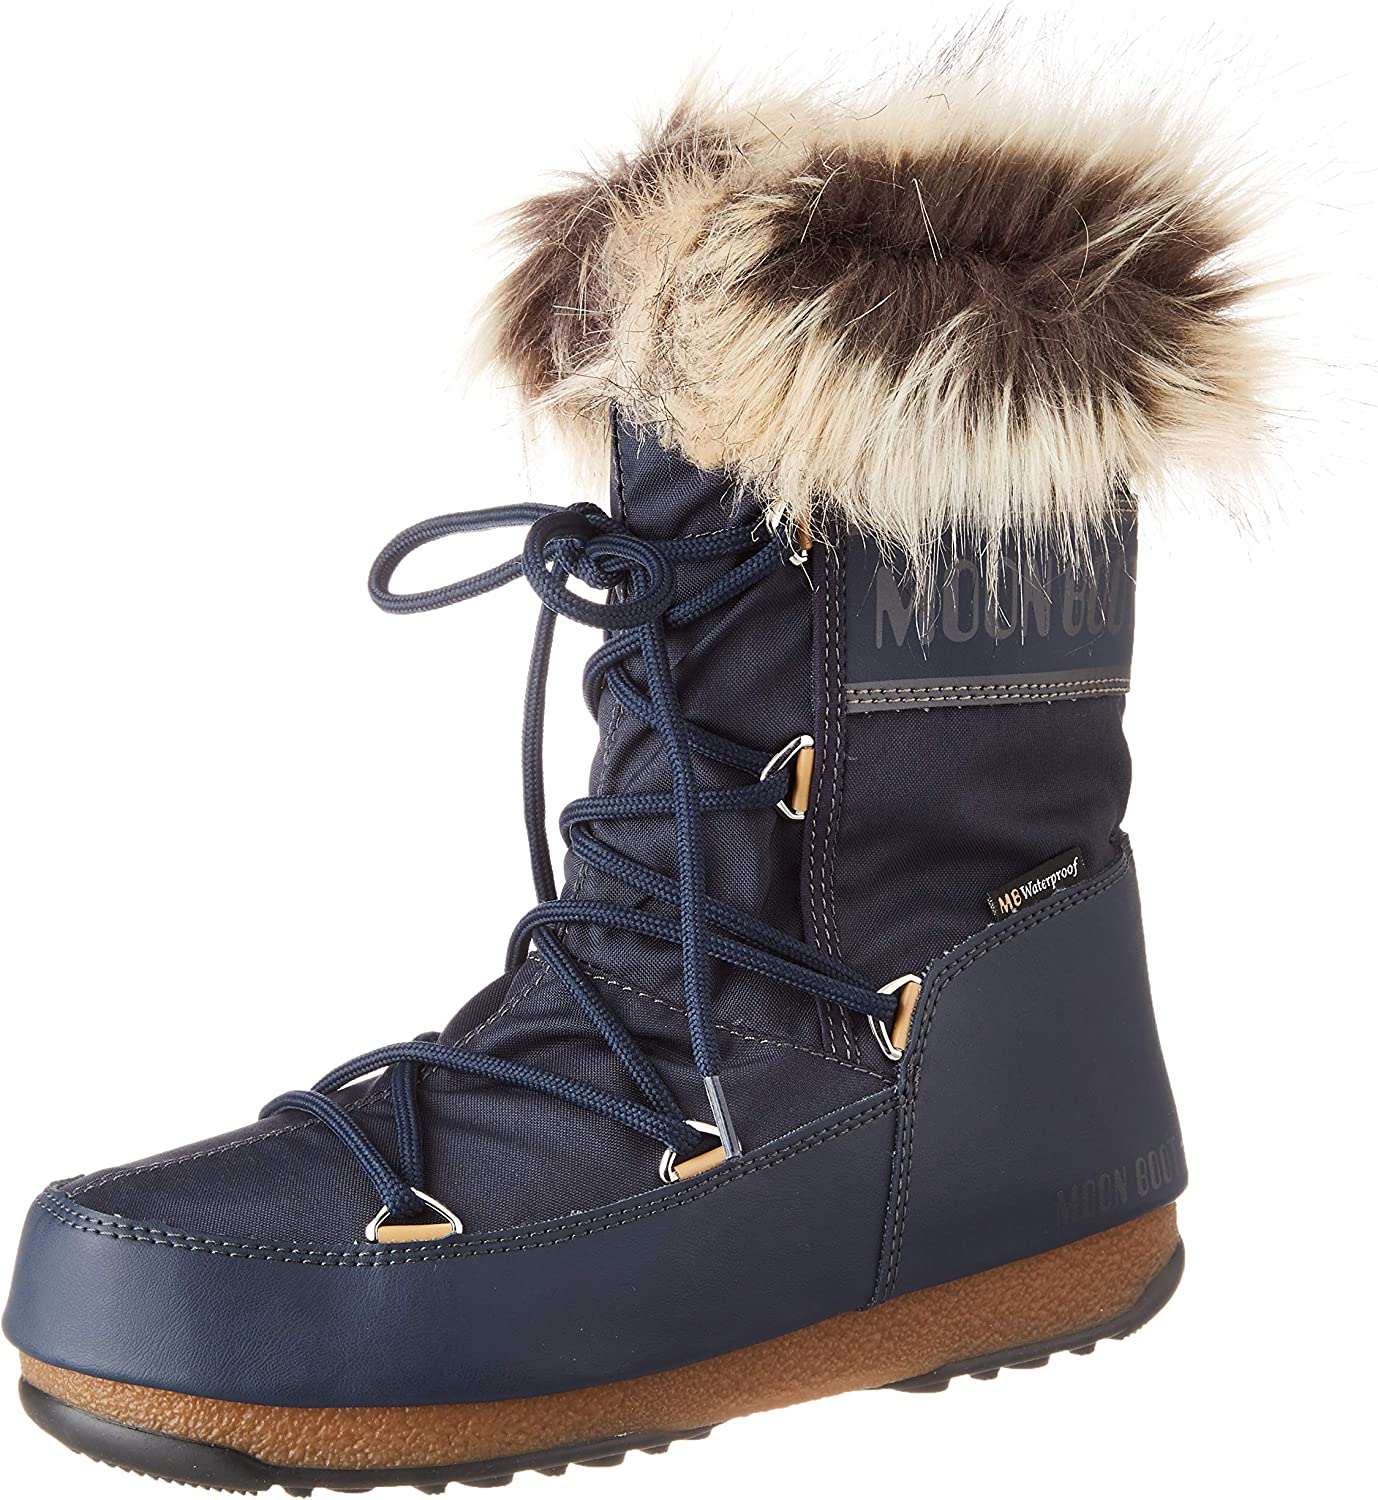 Moon-boot Unisex Adults Snow Boot Max 87% OFF Special price